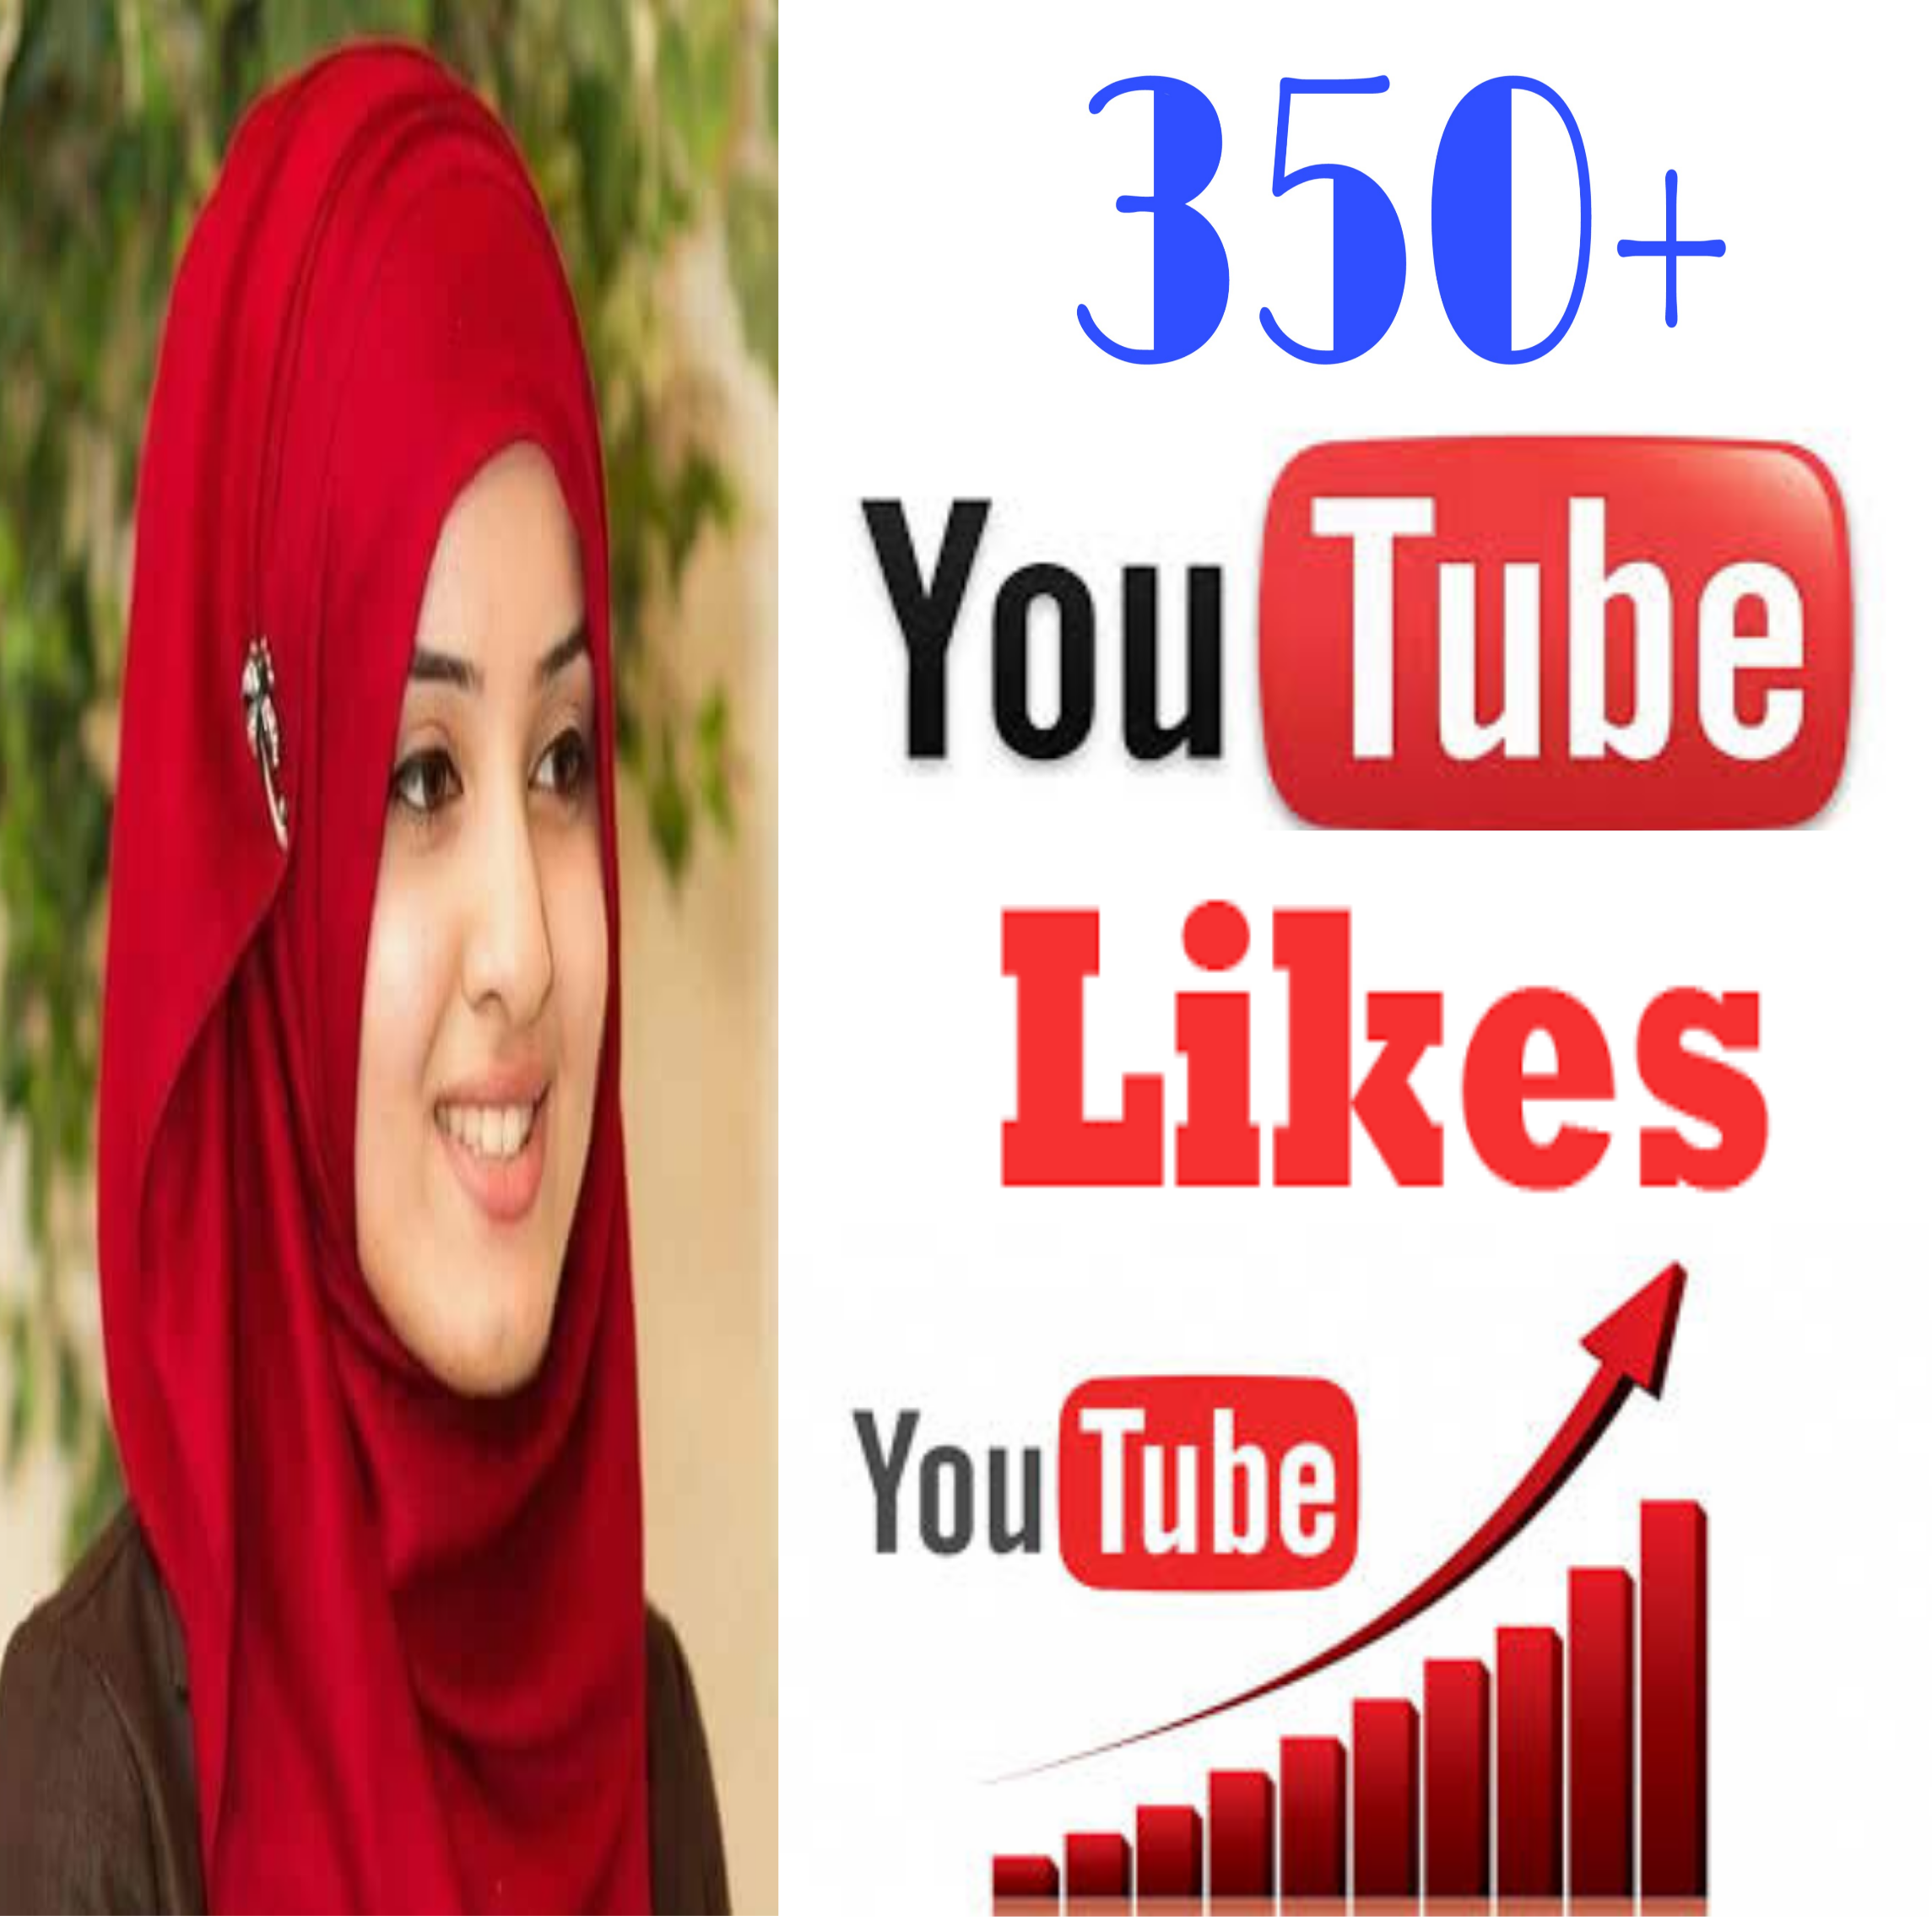 INSTANTLY Provide 350+ high quality You Tube video likes very fast in 1-1 hours